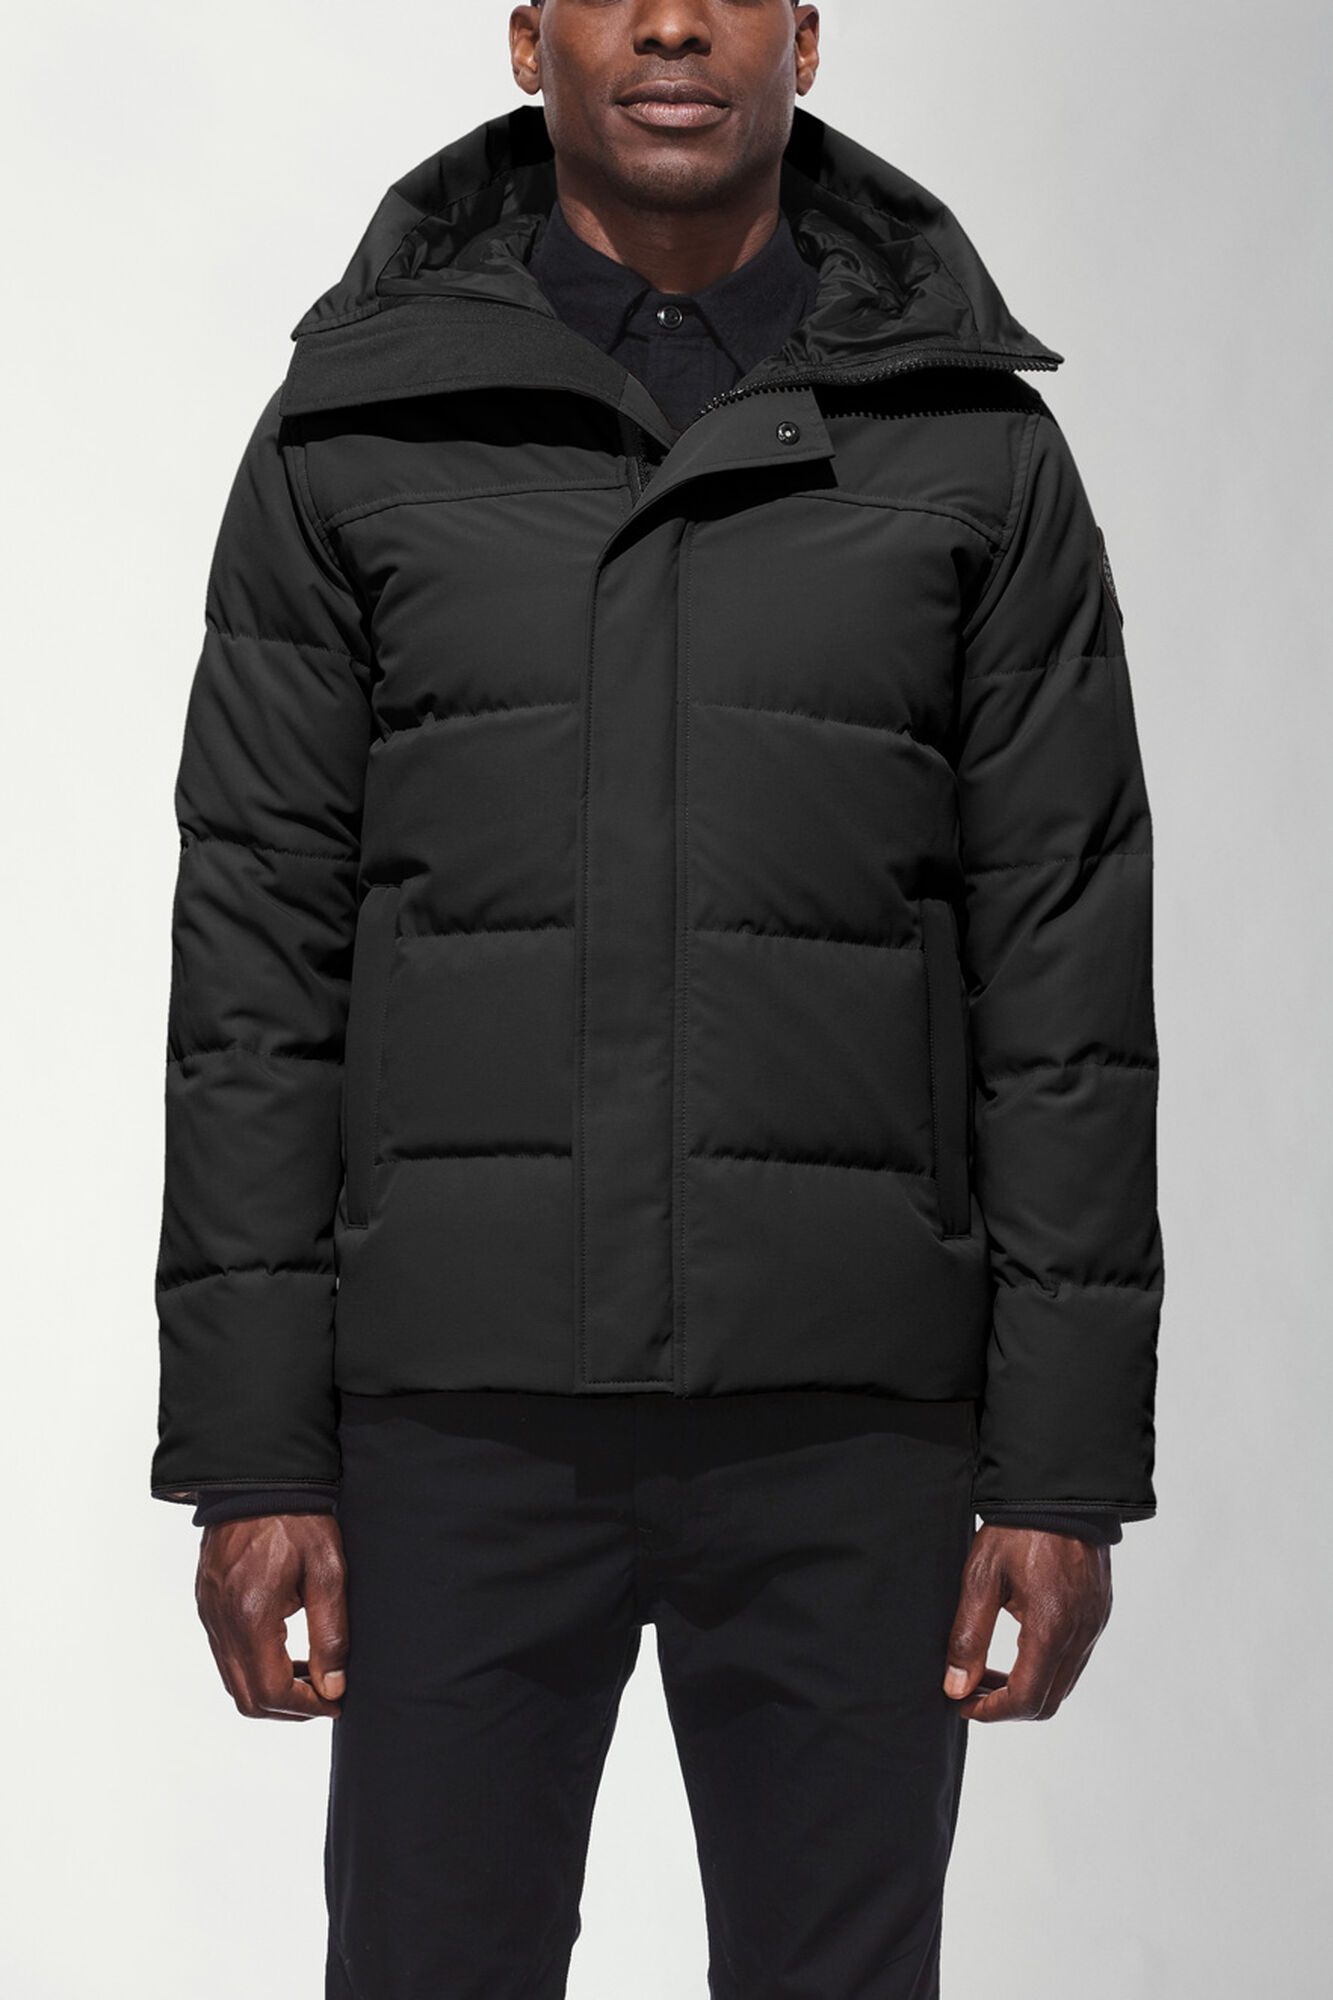 Canada Goose trillium parka replica shop - Men's Parkas | Expedition | Mountaineer | Canada Goose?